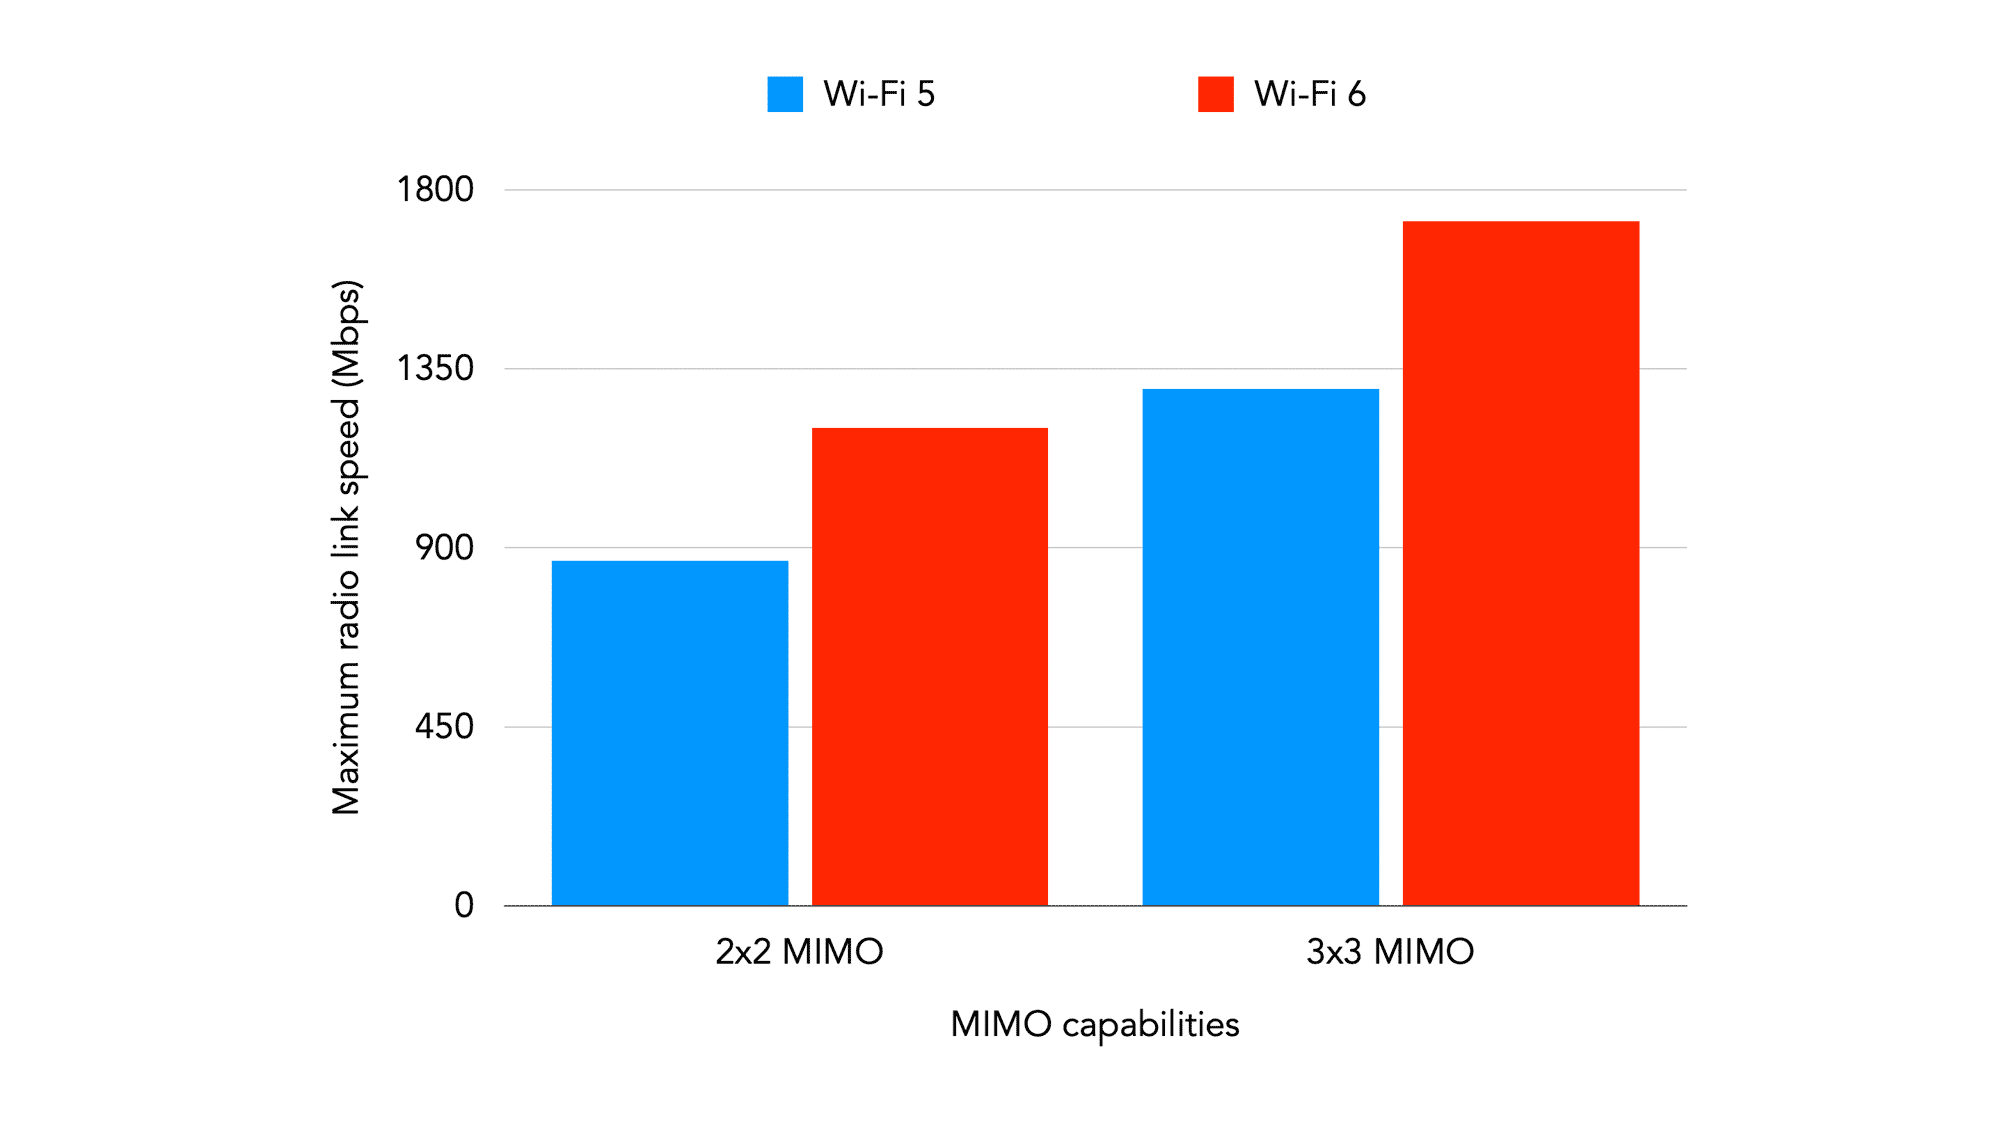 Wi-Fi 5 and Wi-Fi speeds with x2x and 3.x MIMO